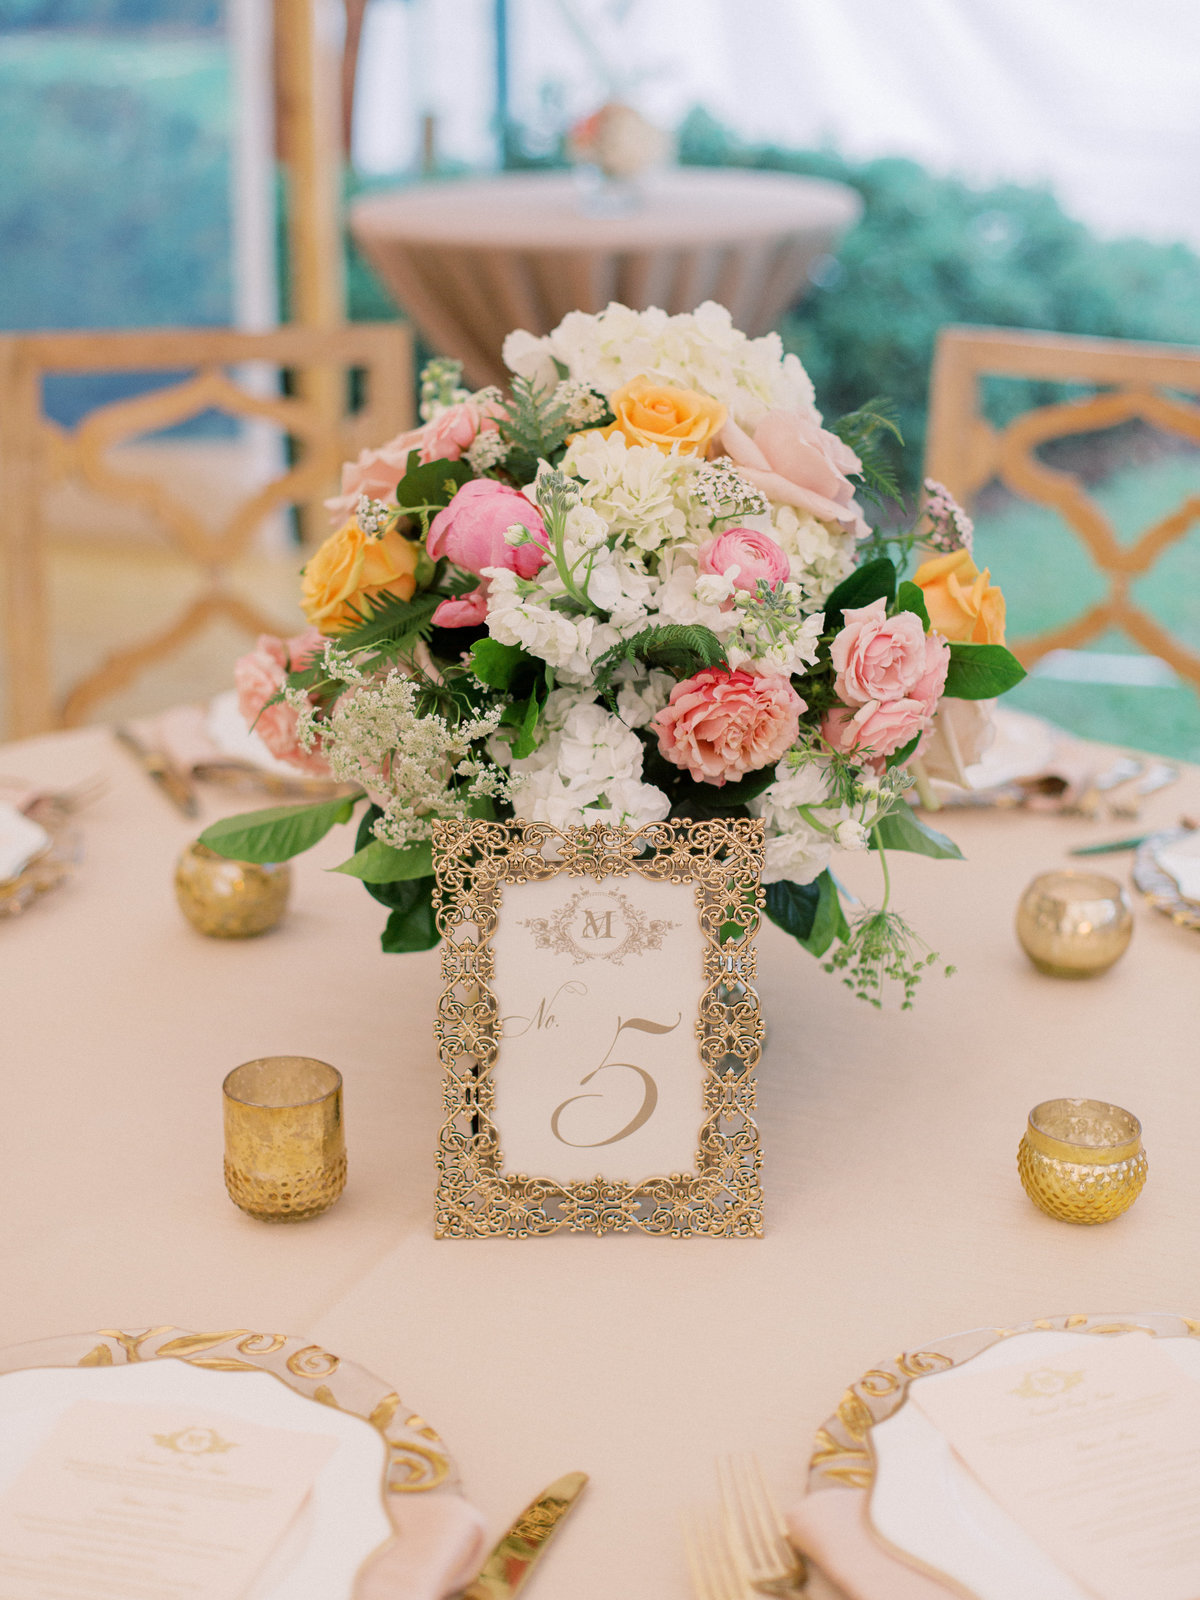 2019-06-08Carrie&MikeWedding-66